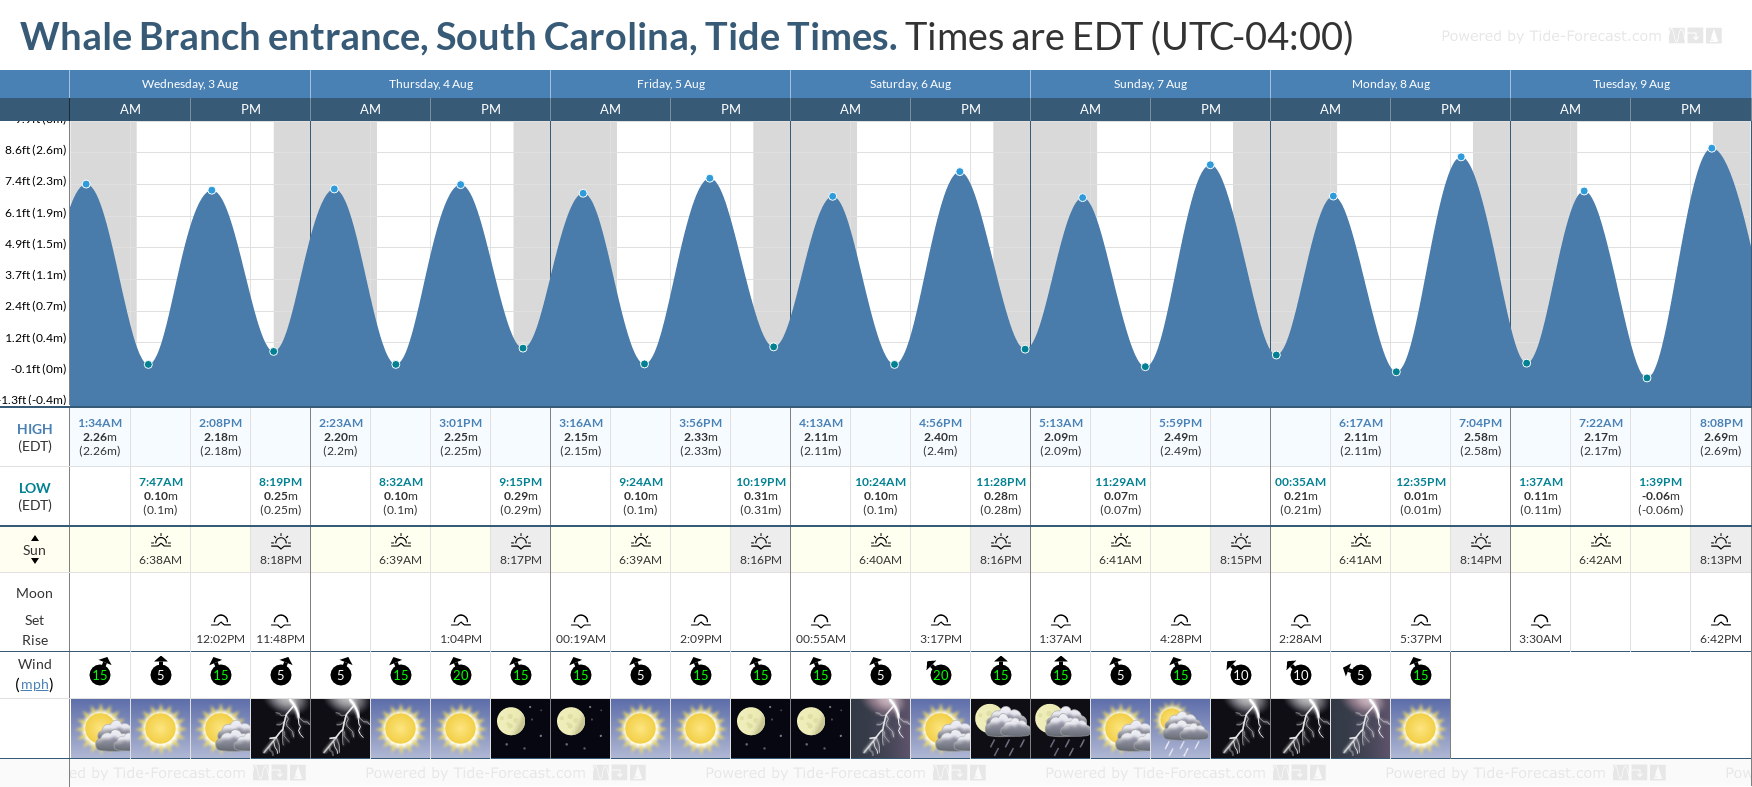 Whale Branch entrance, South Carolina Tide Chart including high and low tide tide times for the next 7 days